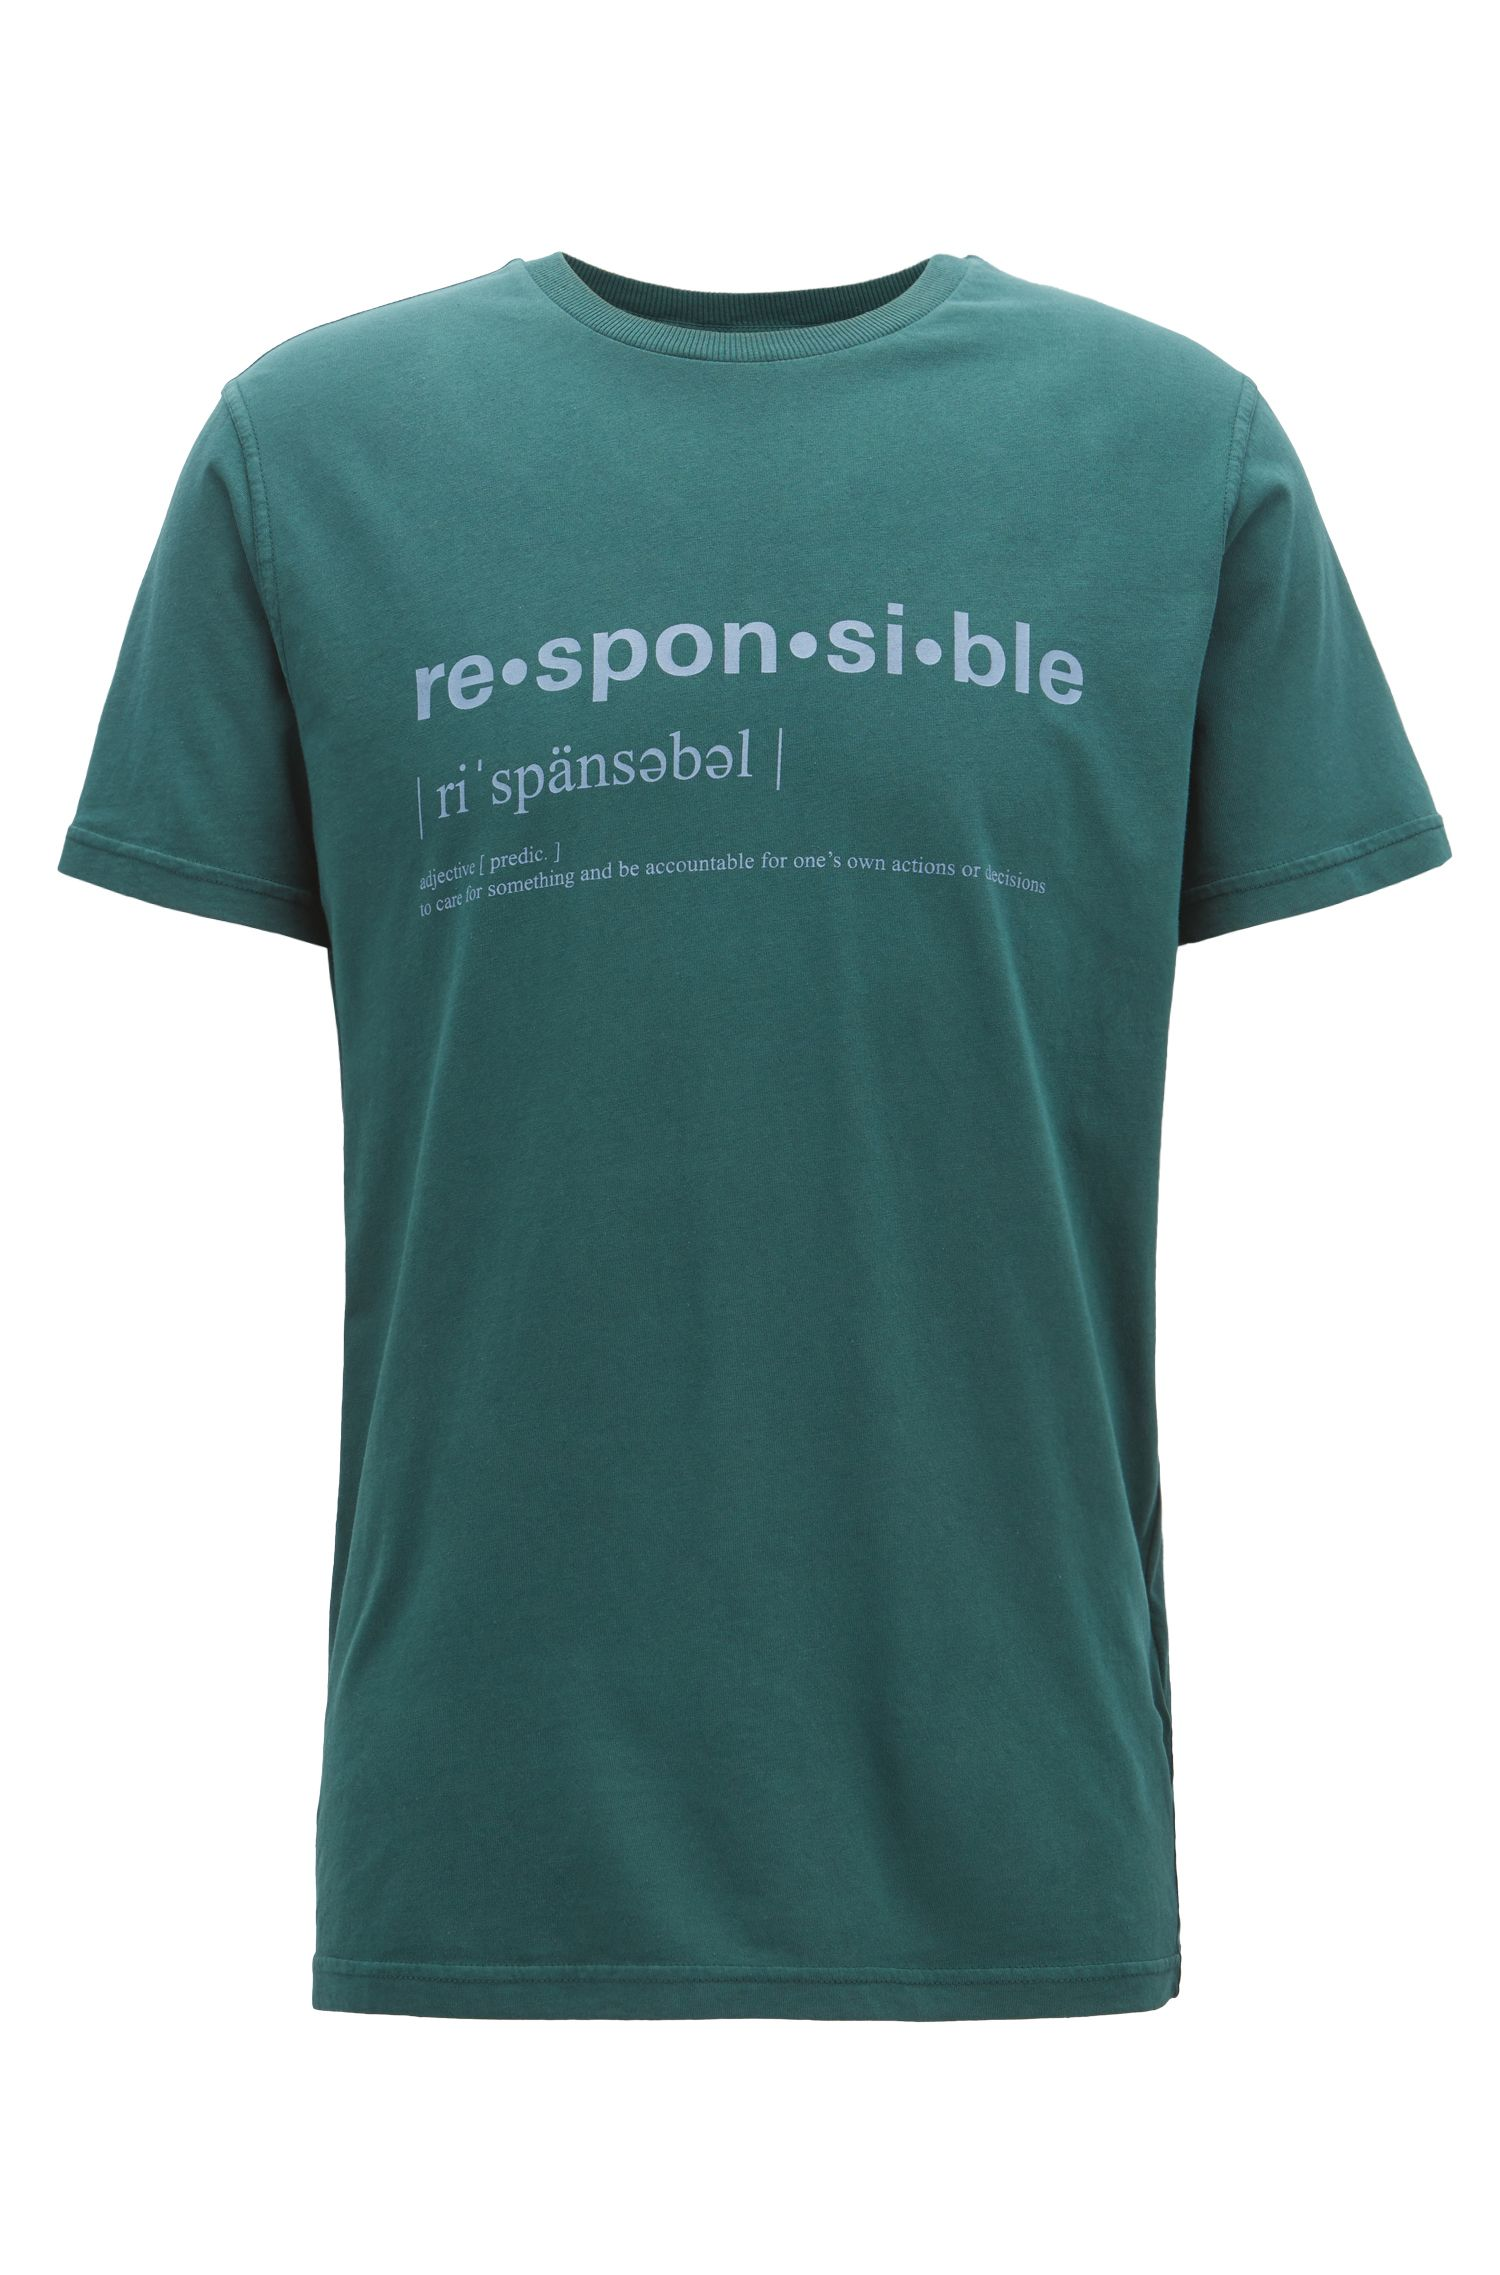 T-shirt Relaxed Fit à message, en jersey de coton recot²®, Vert sombre